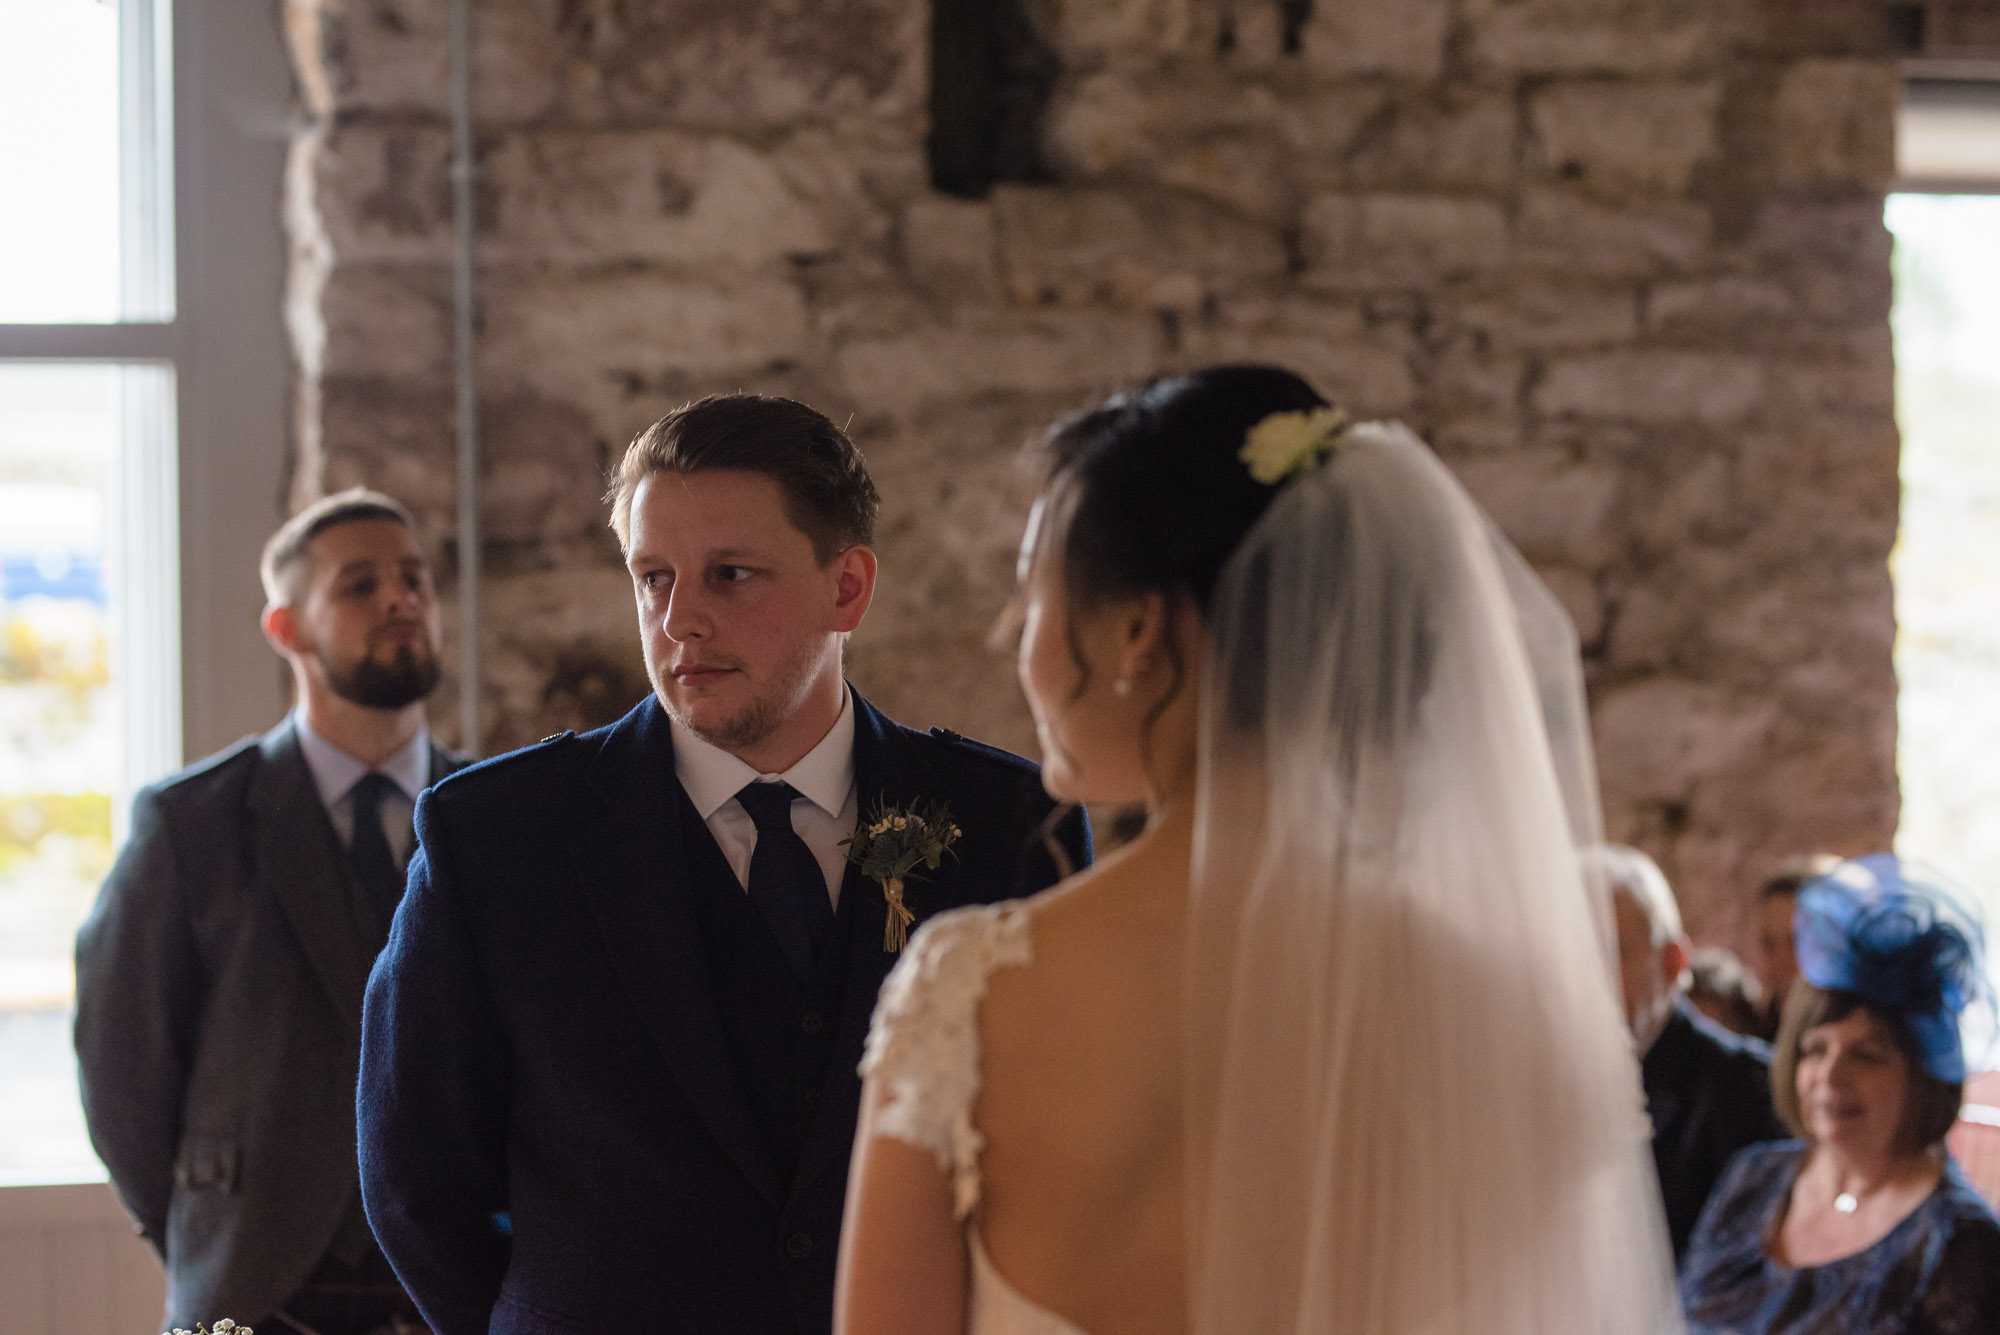 The groom stands in the wedding ceremony and listens intently to the vows.